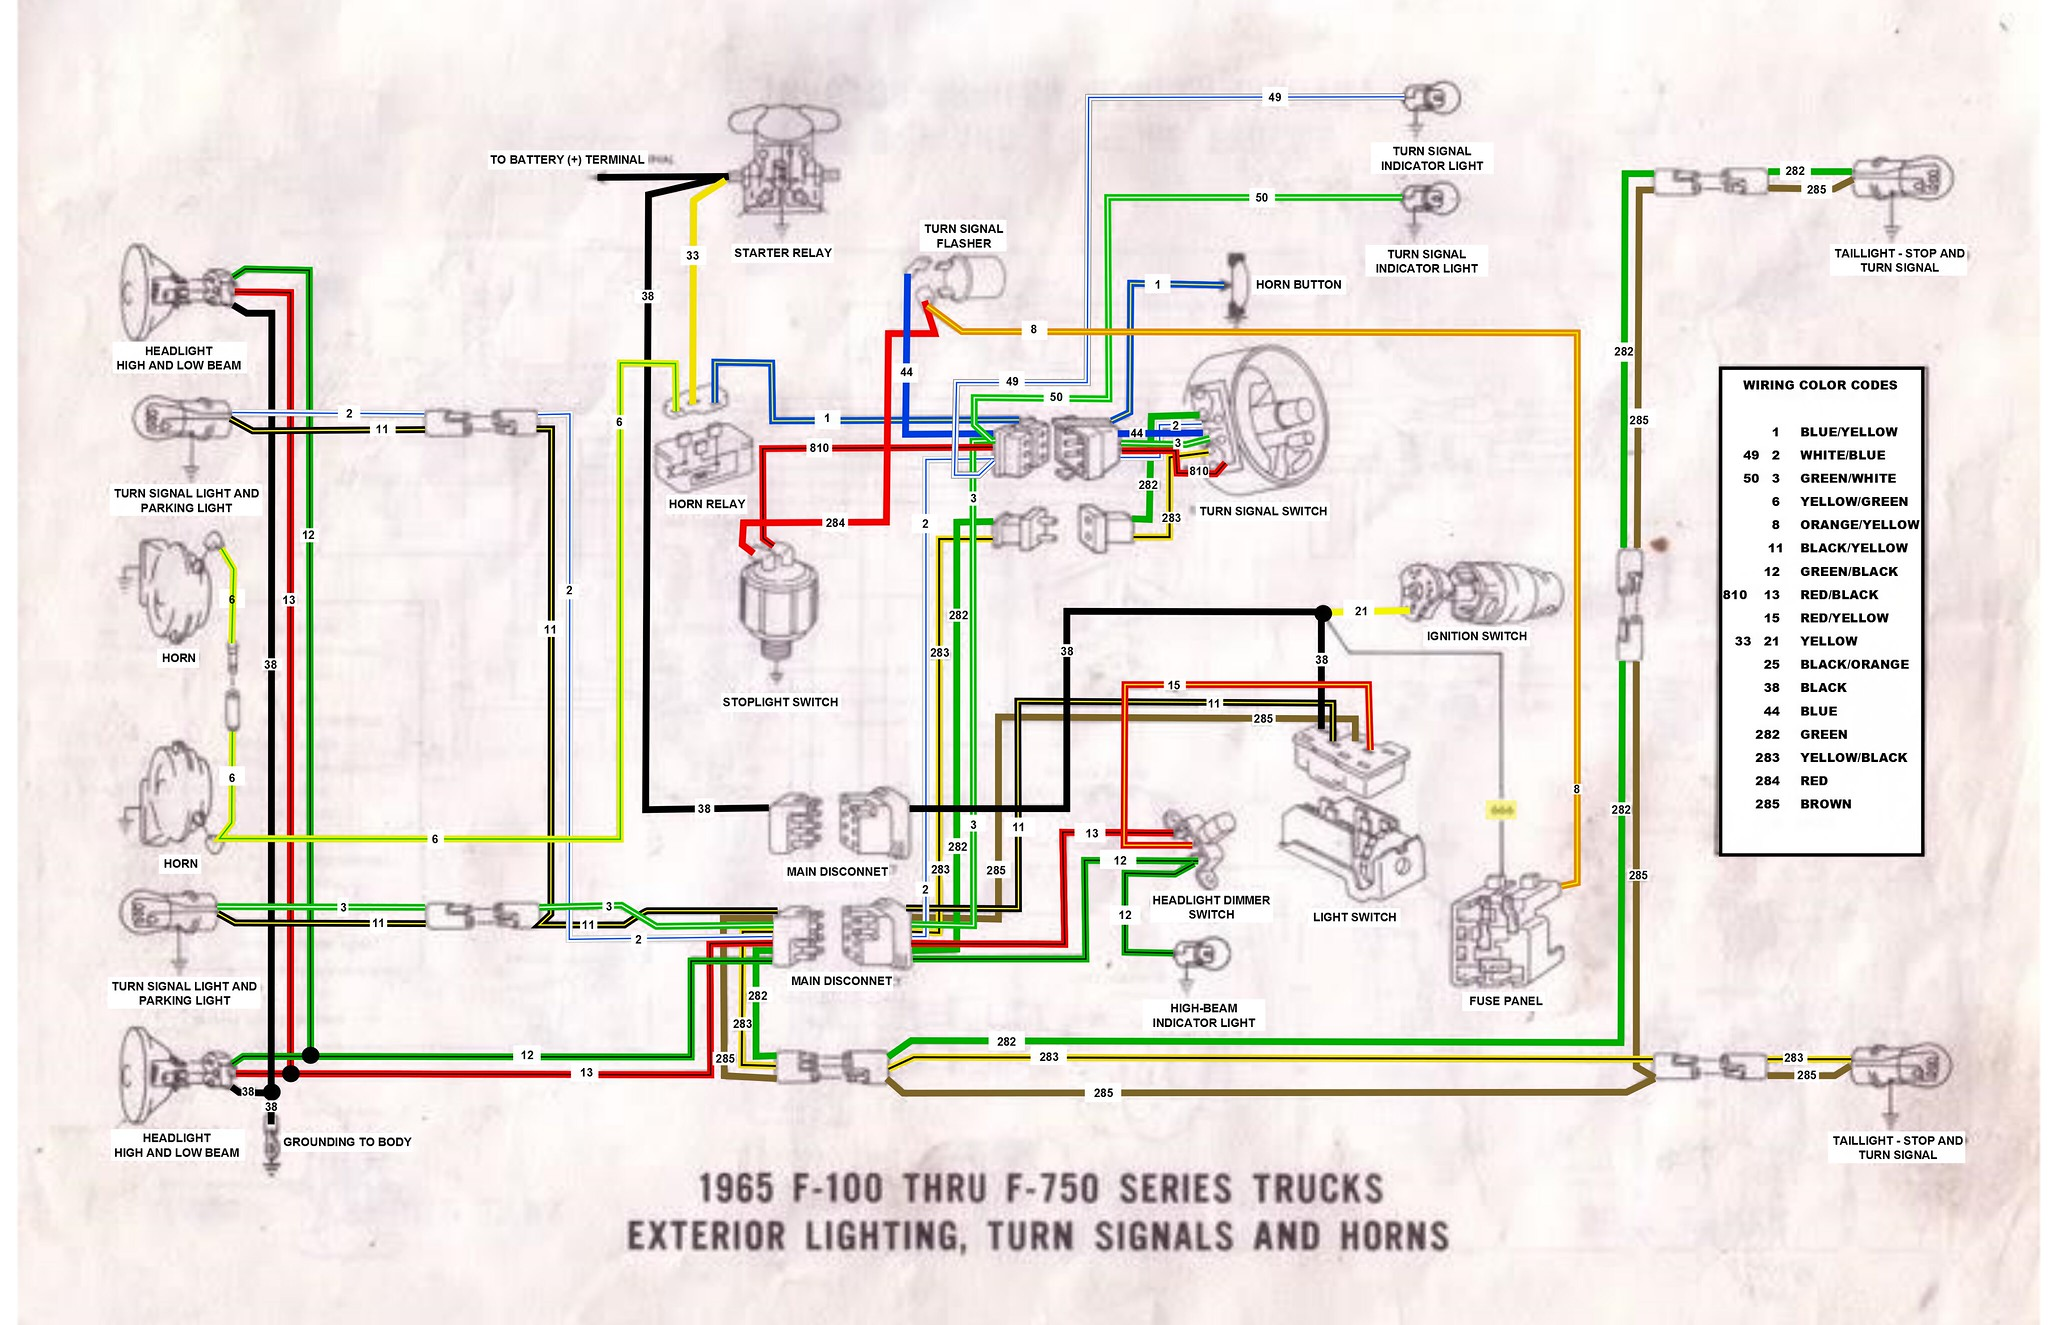 65 F100 thru F750 exterior wiring diagram - Ford Truck Enthusiasts ...